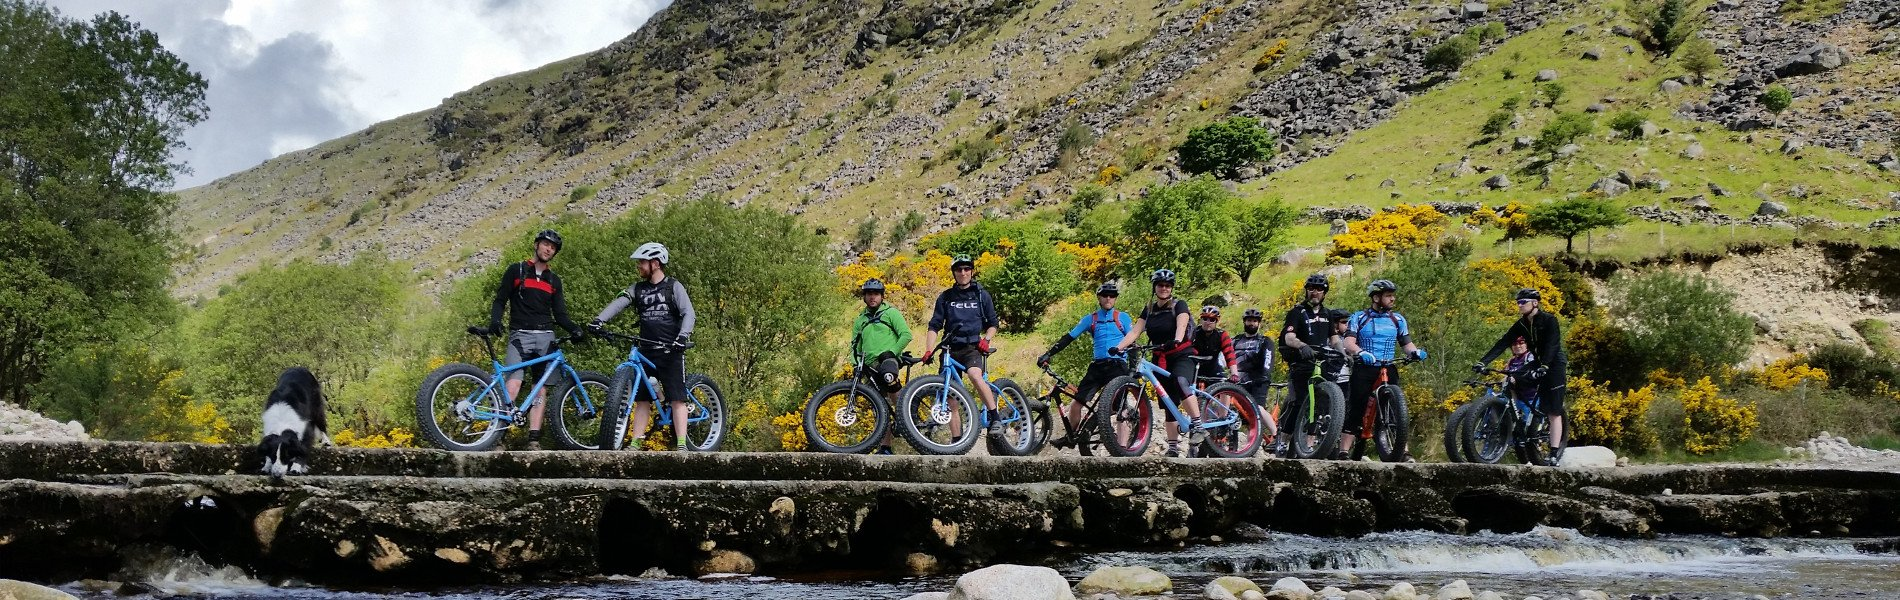 Biking in county wicklow